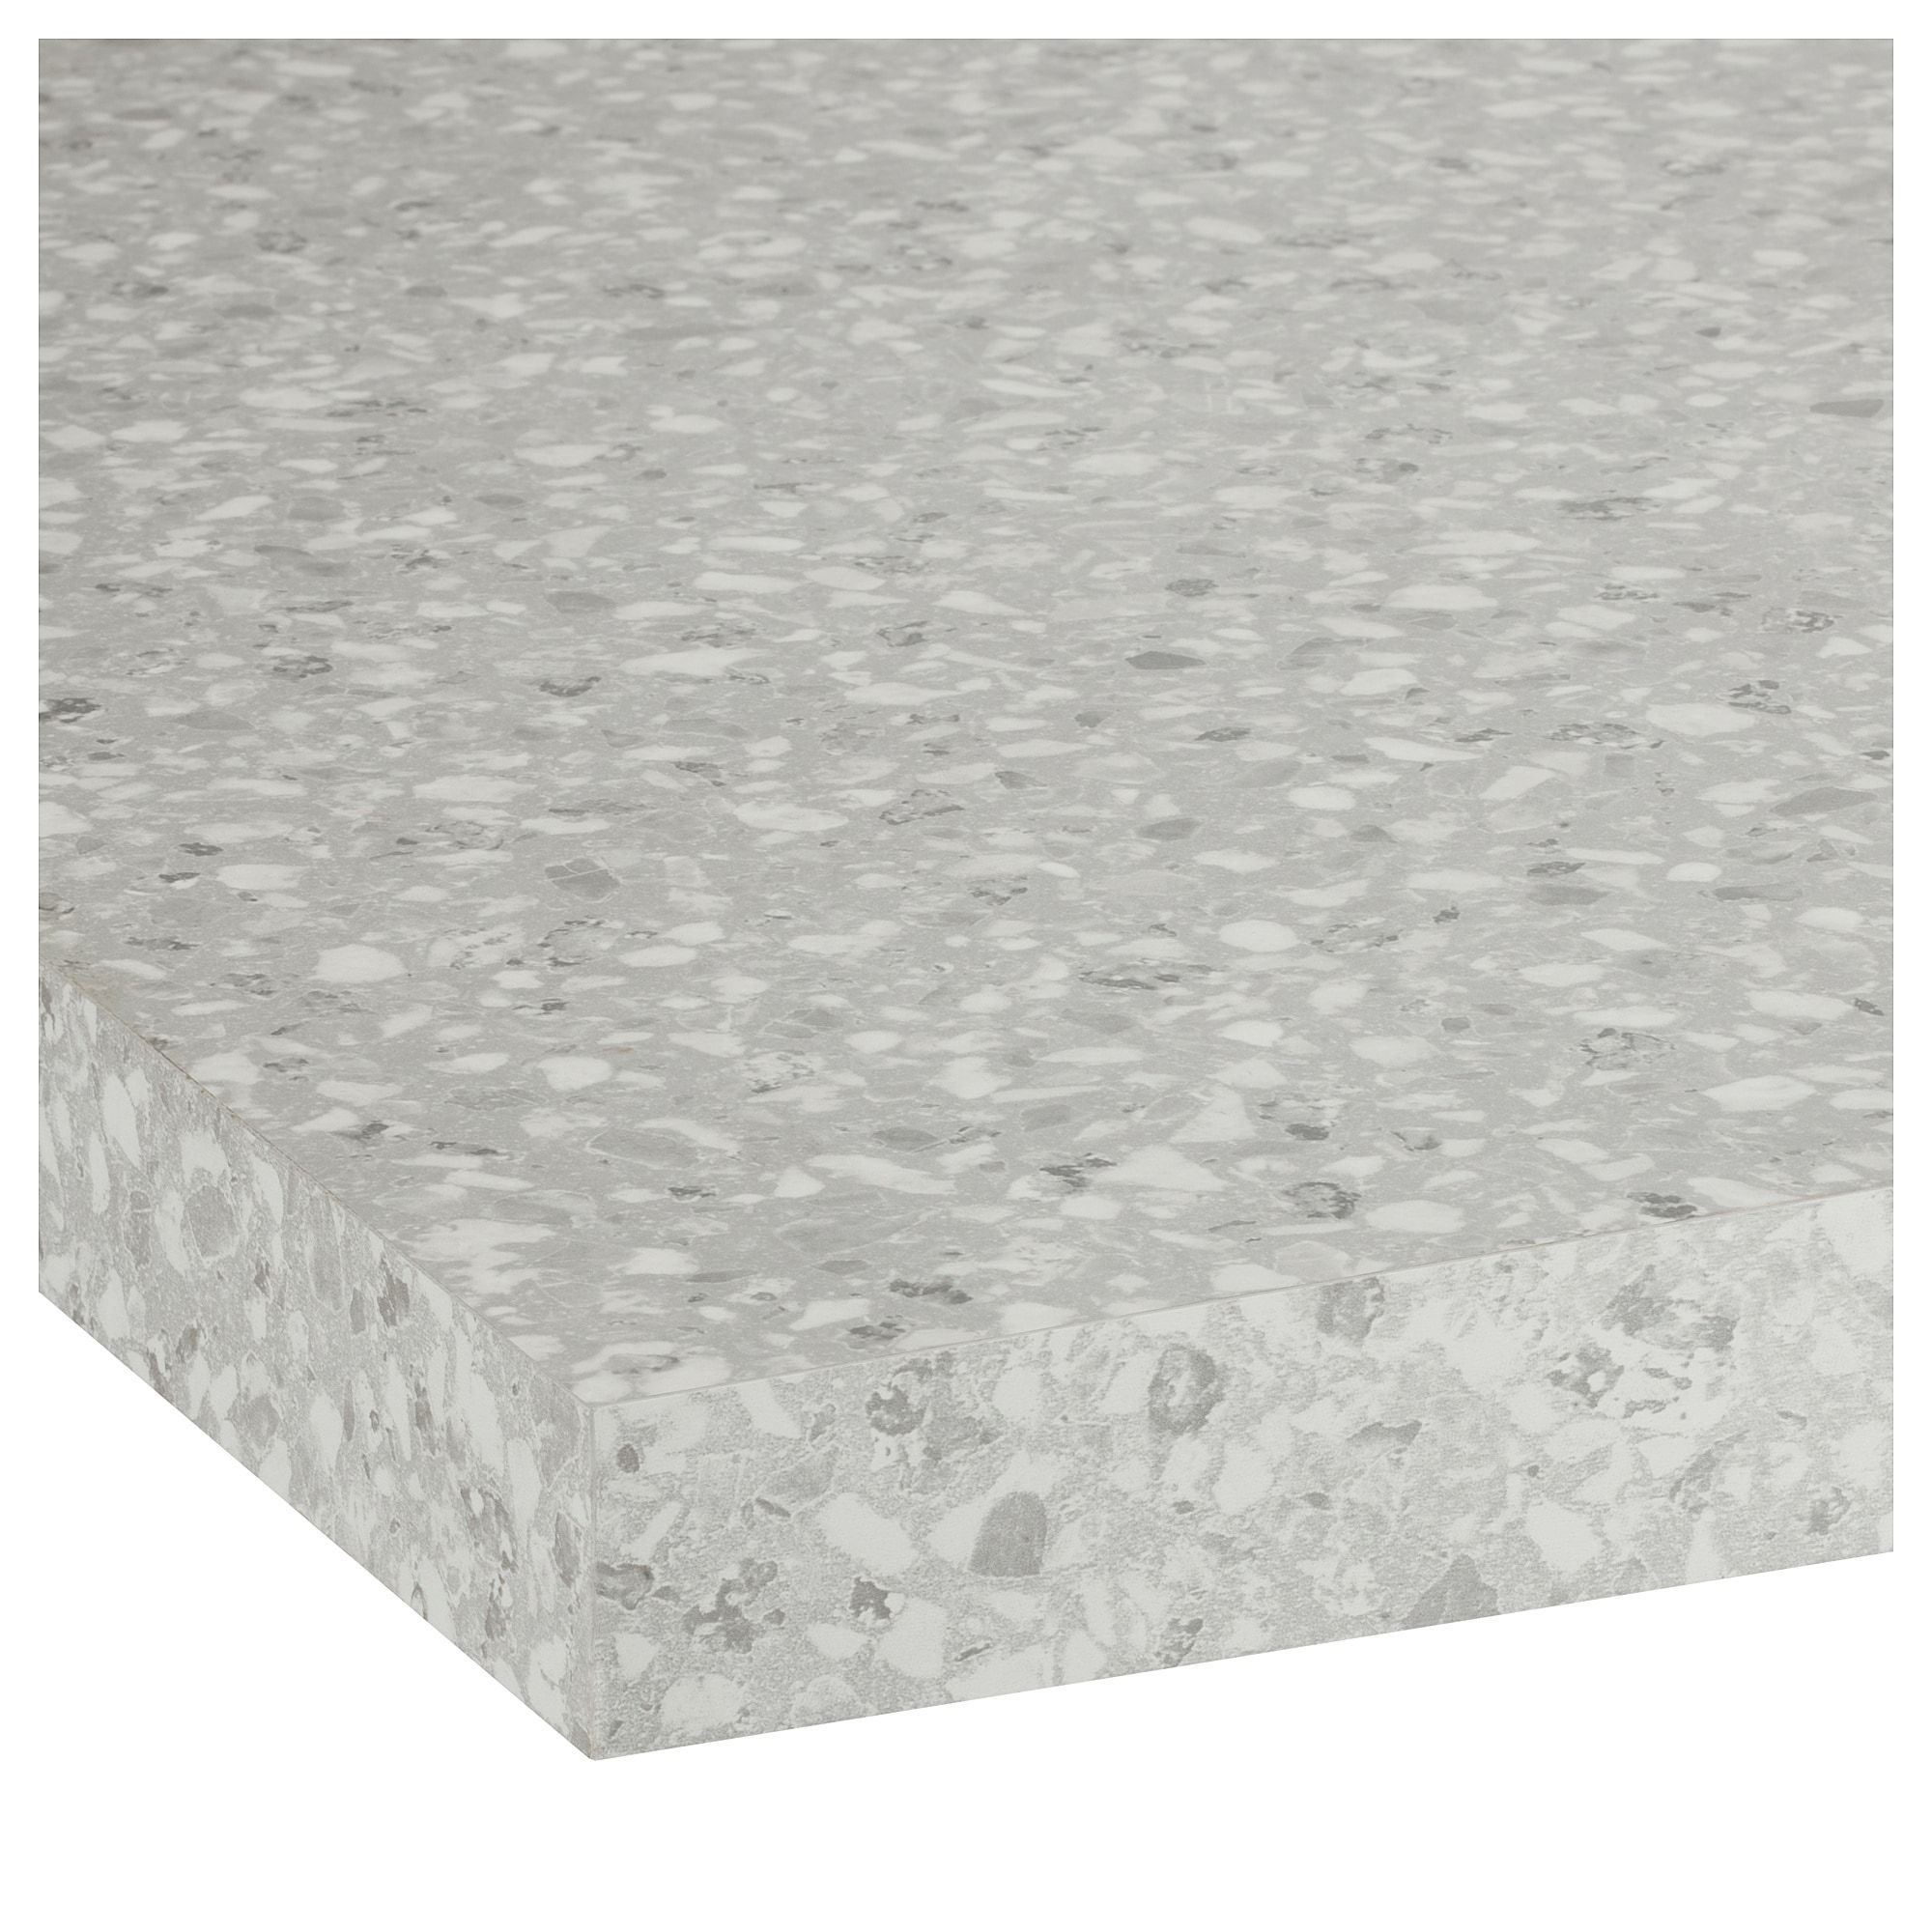 Arbeitsplatte Ikea Ikea SÄljan Countertop Light Gray Mineral Effect Laminate In